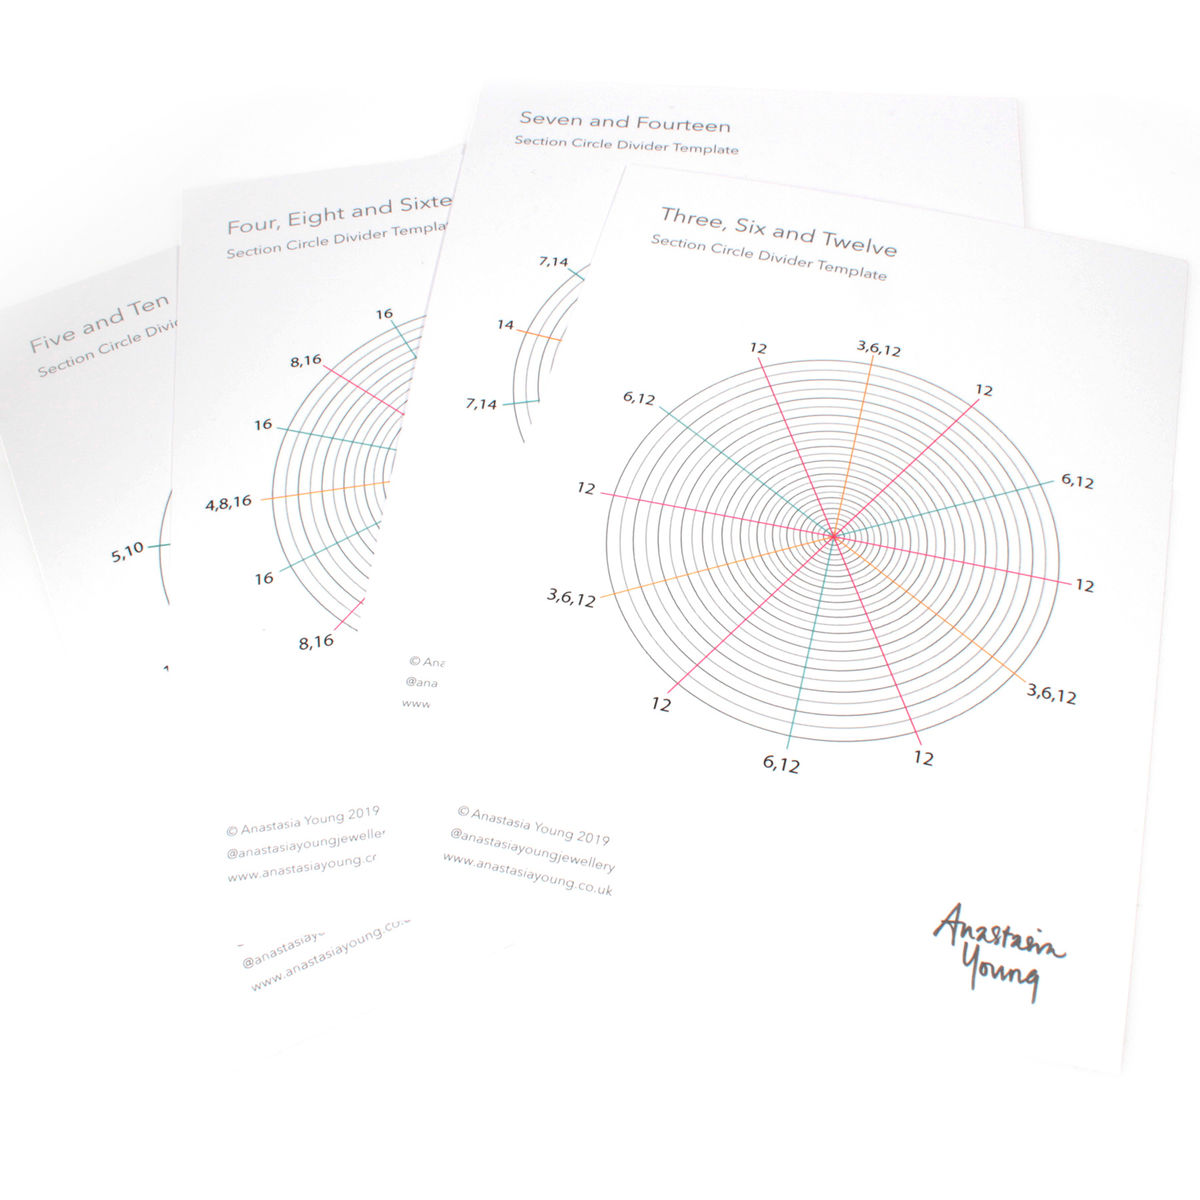 Circle Divider Template Cards - product images  of